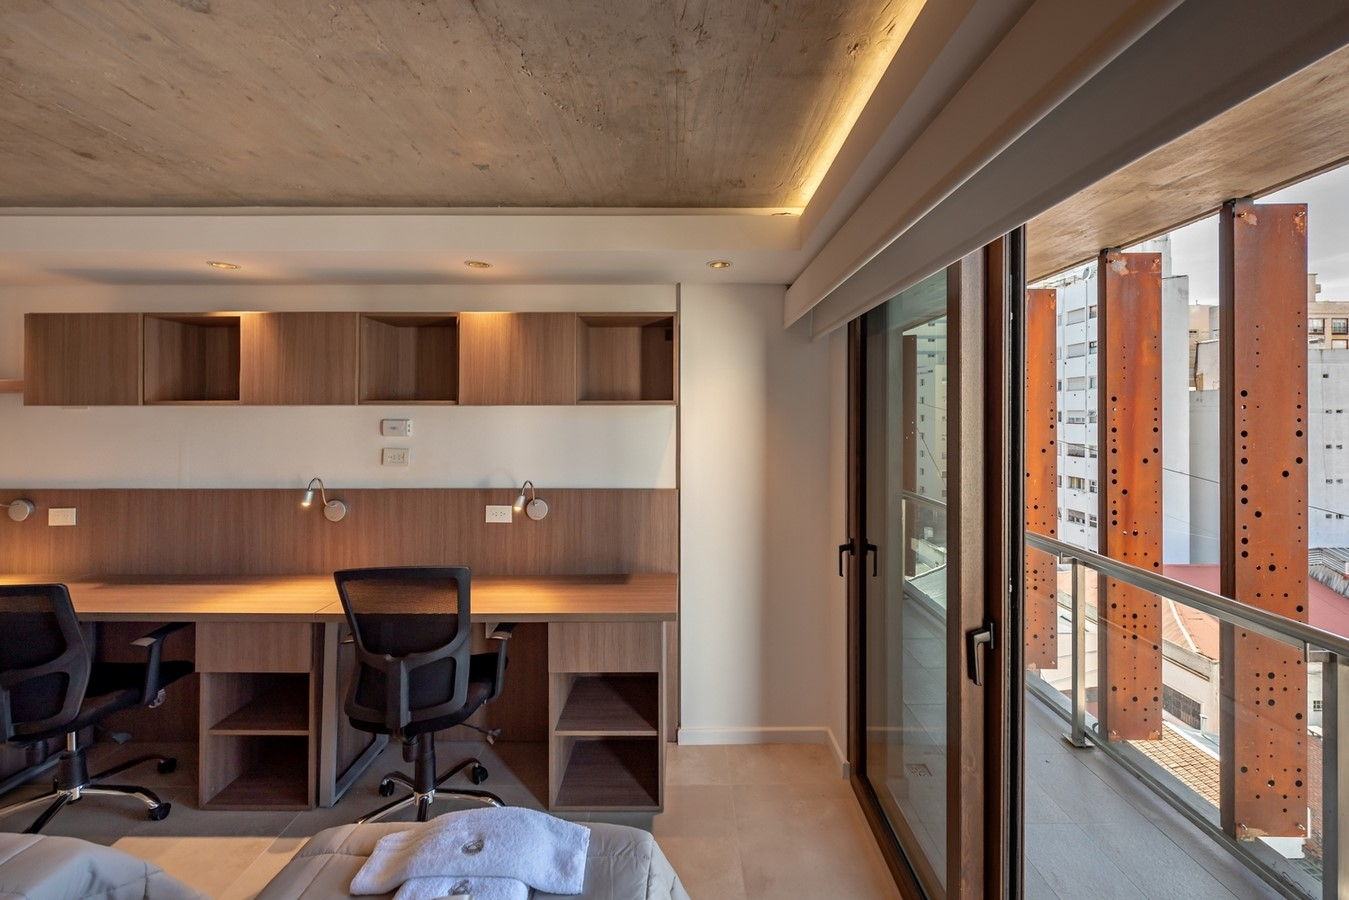 20 Examples of modern student housing - Sheet19